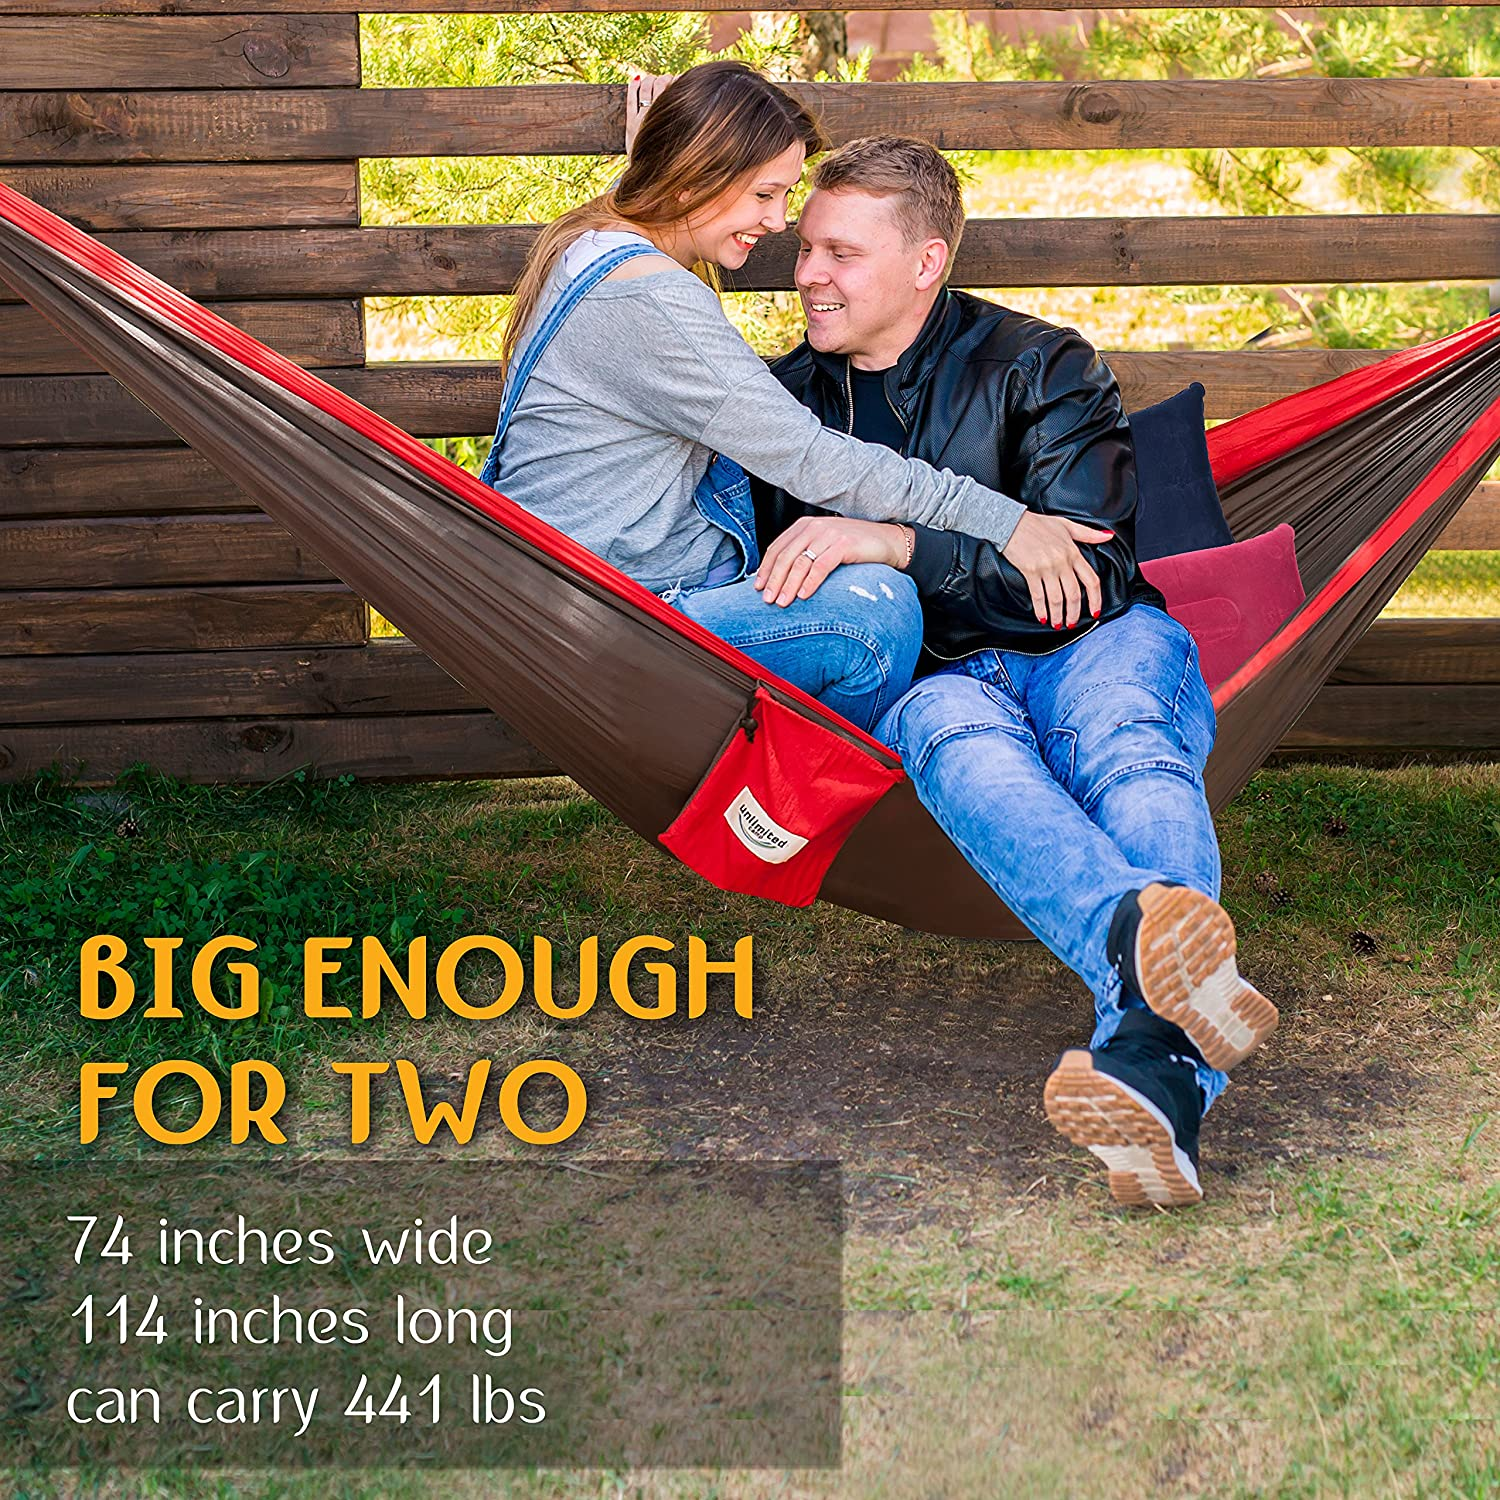 amazon    double camping hammock by unlimited camp  3 seam nylon portable lightweight bedding for camping hiking beach or yard plus free pillows     amazon    double camping hammock by unlimited camp  3 seam nylon      rh   amazon